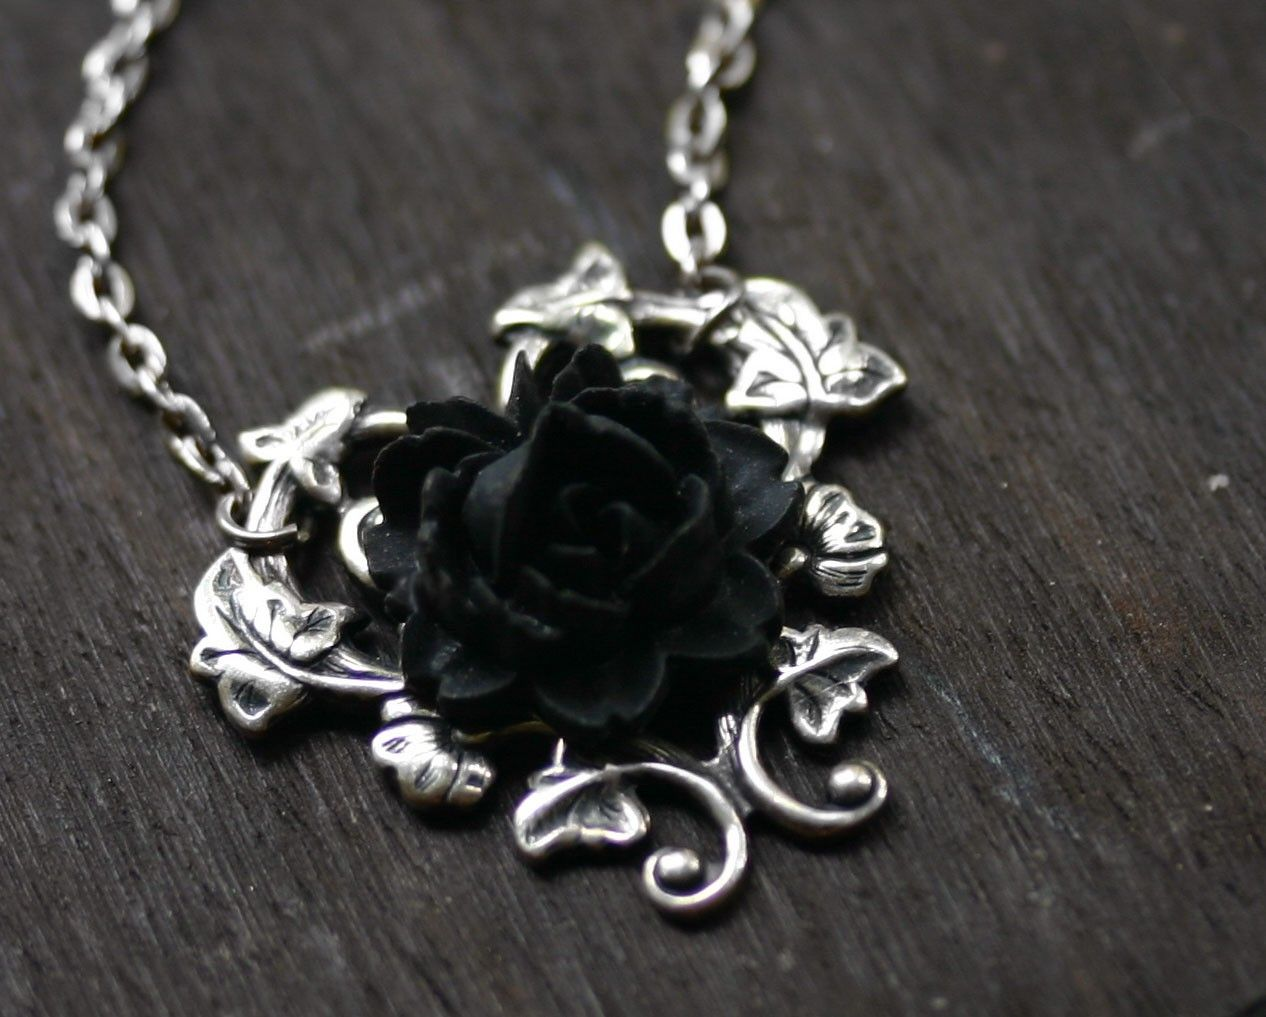 Black rose necklace gothic steampunk necklace gothic steampunk black rose necklace gothic steampunk necklace aloadofball Gallery